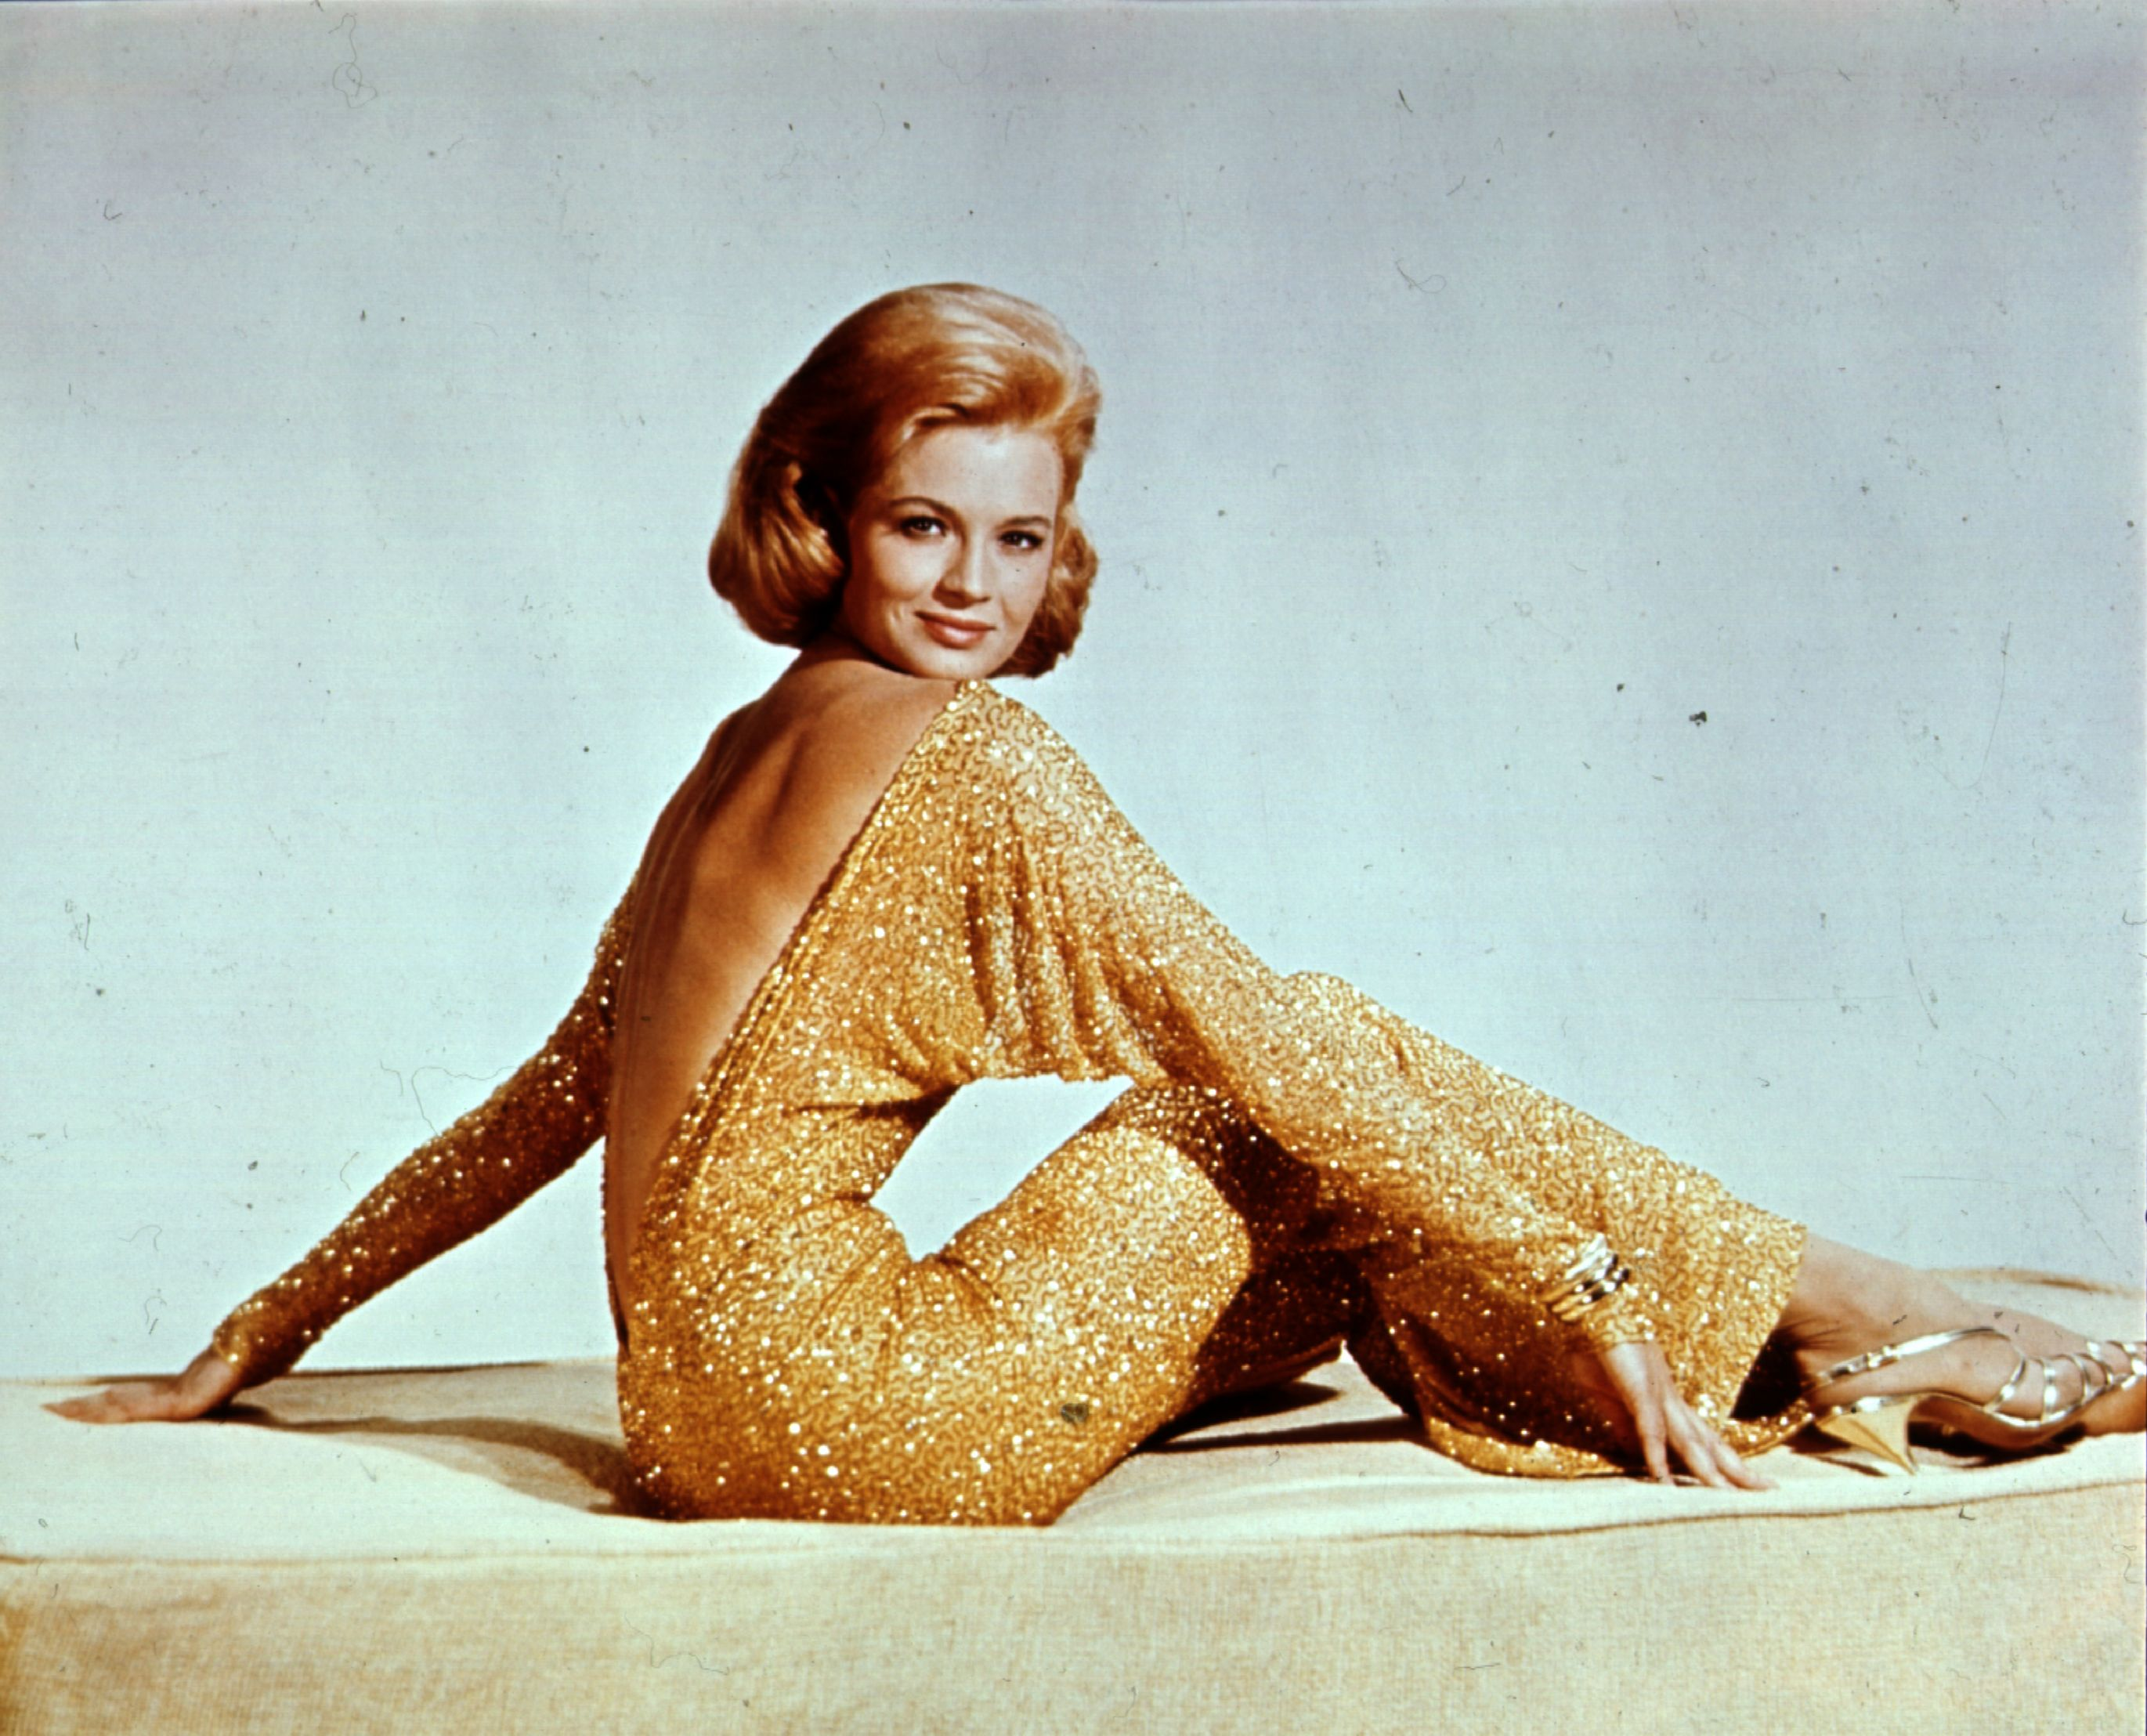 Angie Dickinson wearing a backless gold lame evening dress with batwing sleeves circa 1965. | Photo: Getty Images